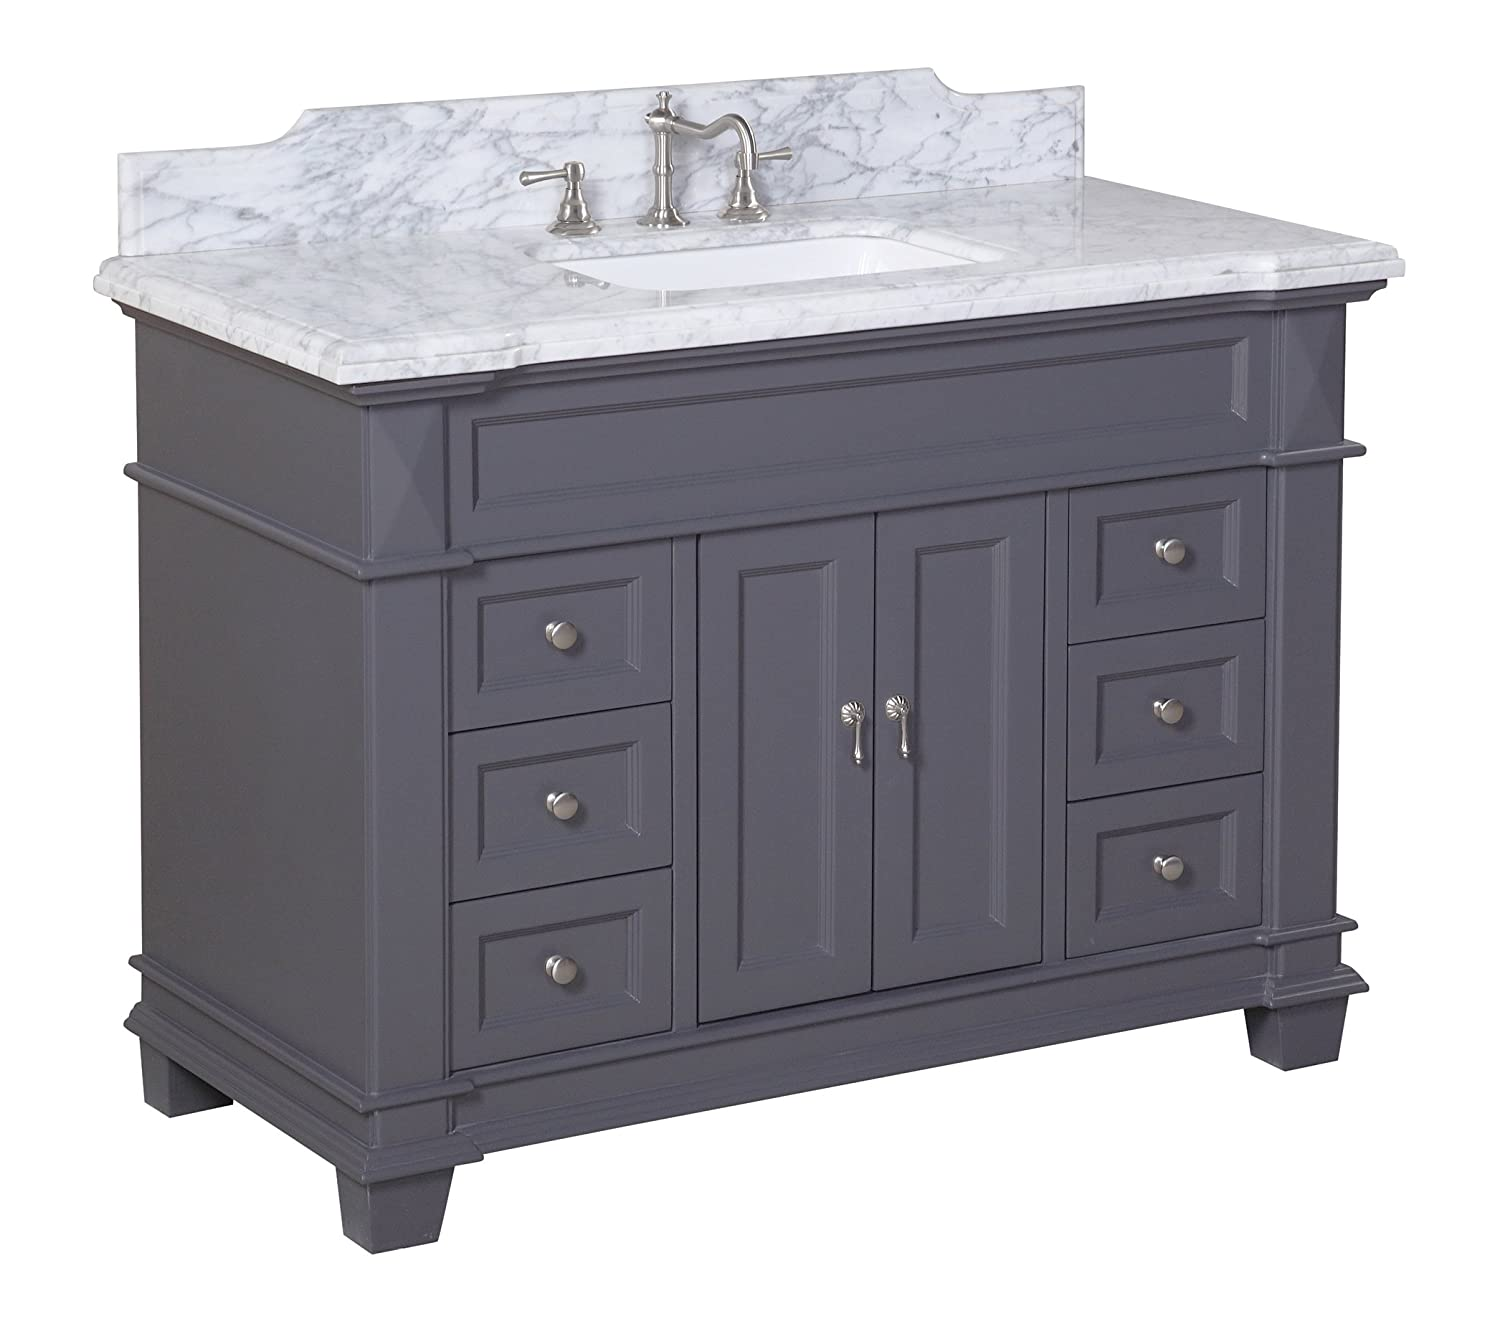 Elizabeth 48-inch Bathroom Vanity Carrara Charcoal Gray Includes Gray Cabinet with Soft Close Drawers Self Closing Doors, Authentic Italian Carrara Marble Top, and Rectangular Ceramic Sink